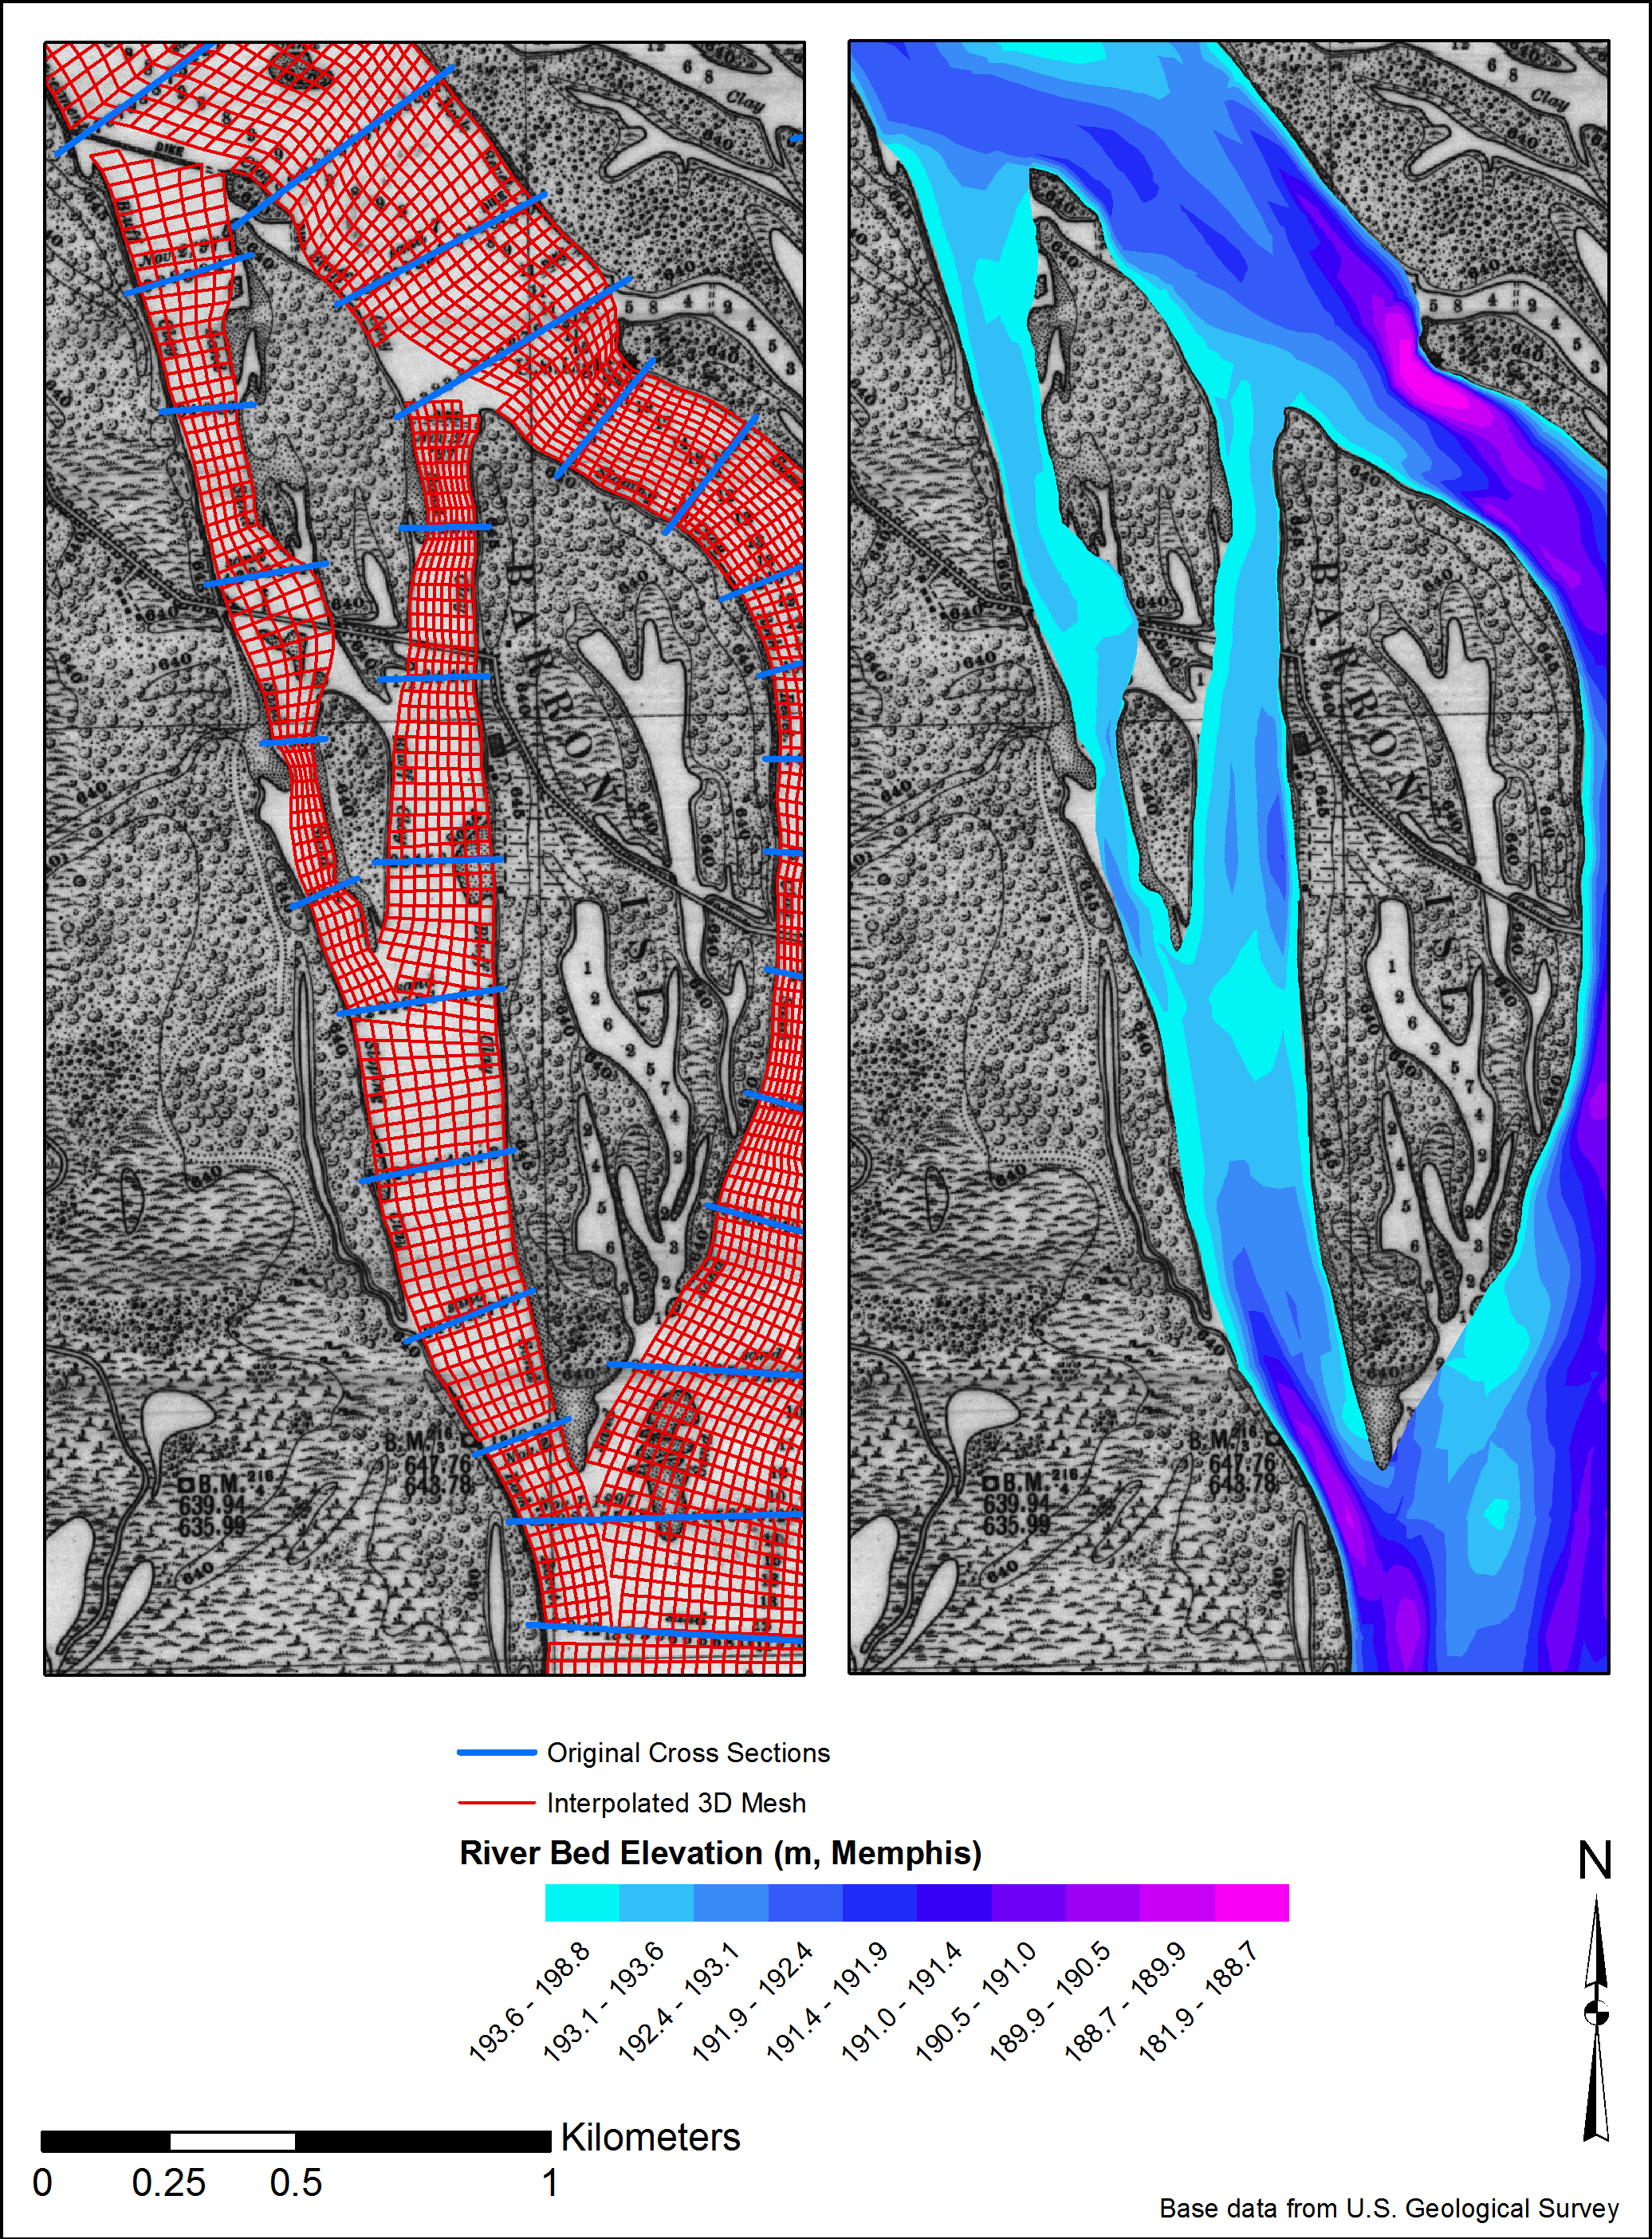 Stafne took cross sections of the bed surface and interpolated them into a digital surface using a tool developed by a researcher at Purdue University. They are overlaid over the historic map from the 1890s.